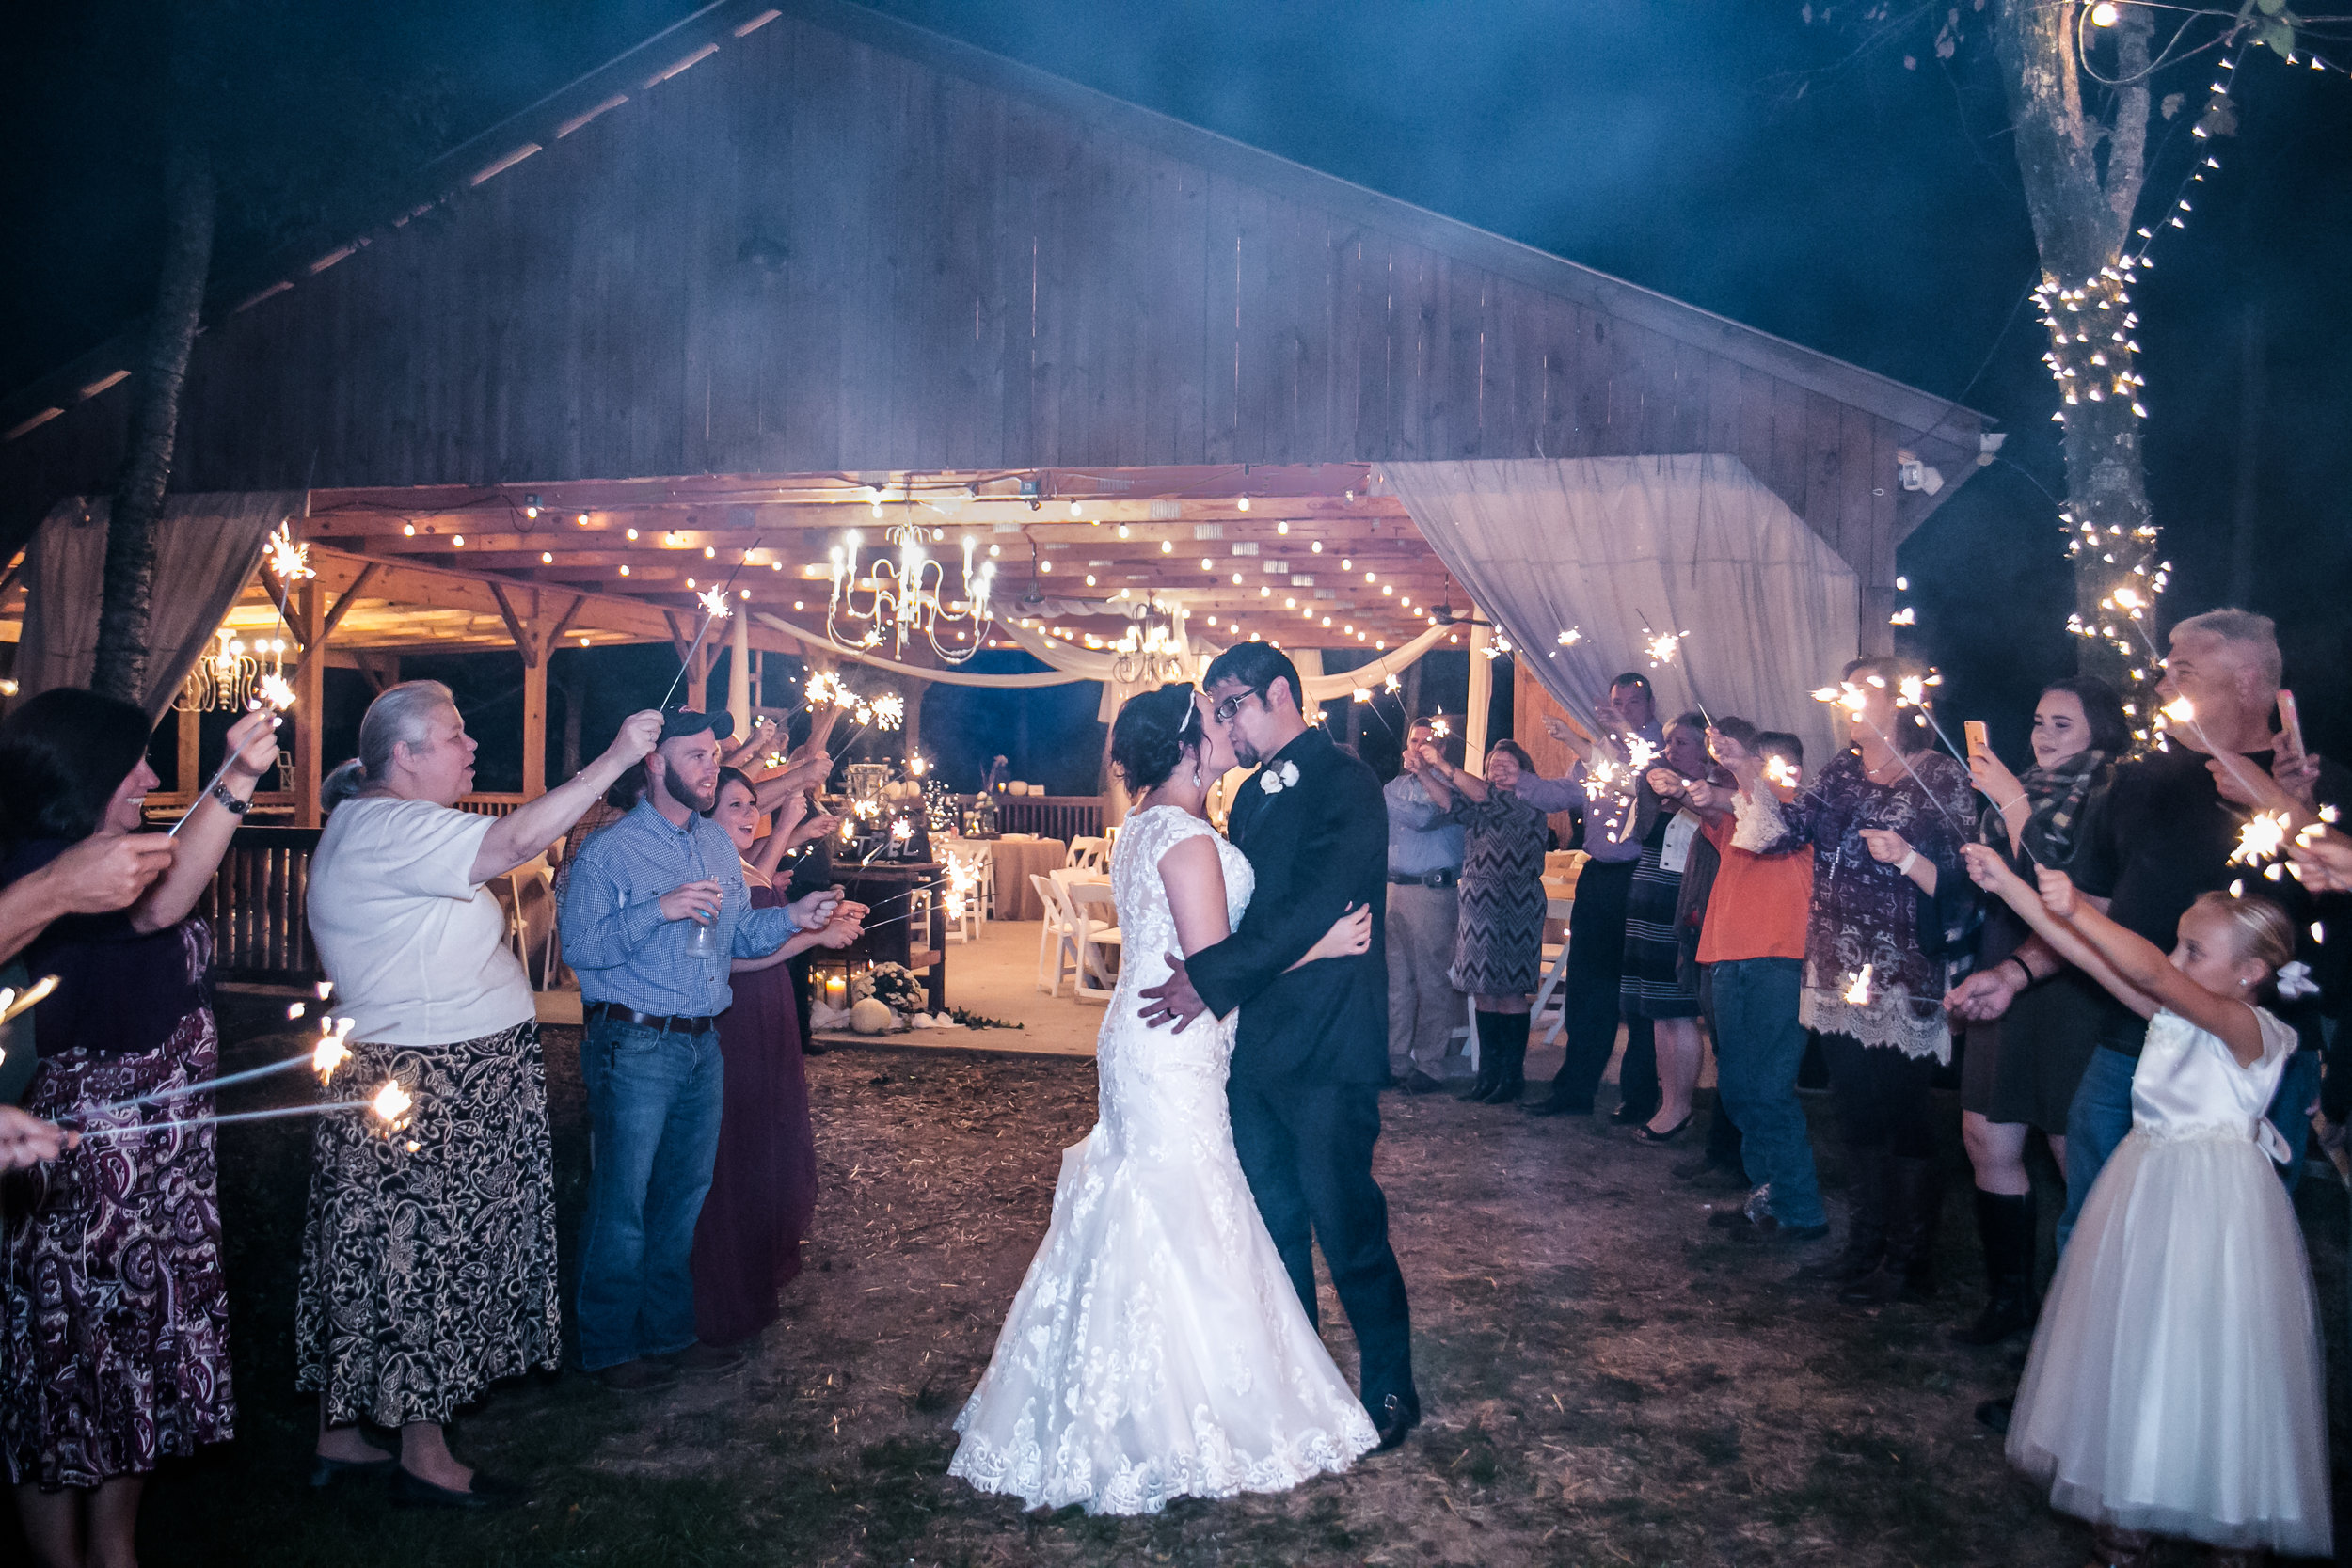 Nashville Wedding Photographers - Ryan Photography, DJ & Lighting  http://www.carolynryanphotography.com  http://www.rickryan.com  #NashvilleWeddingPhotographers  @RickRyanMusic